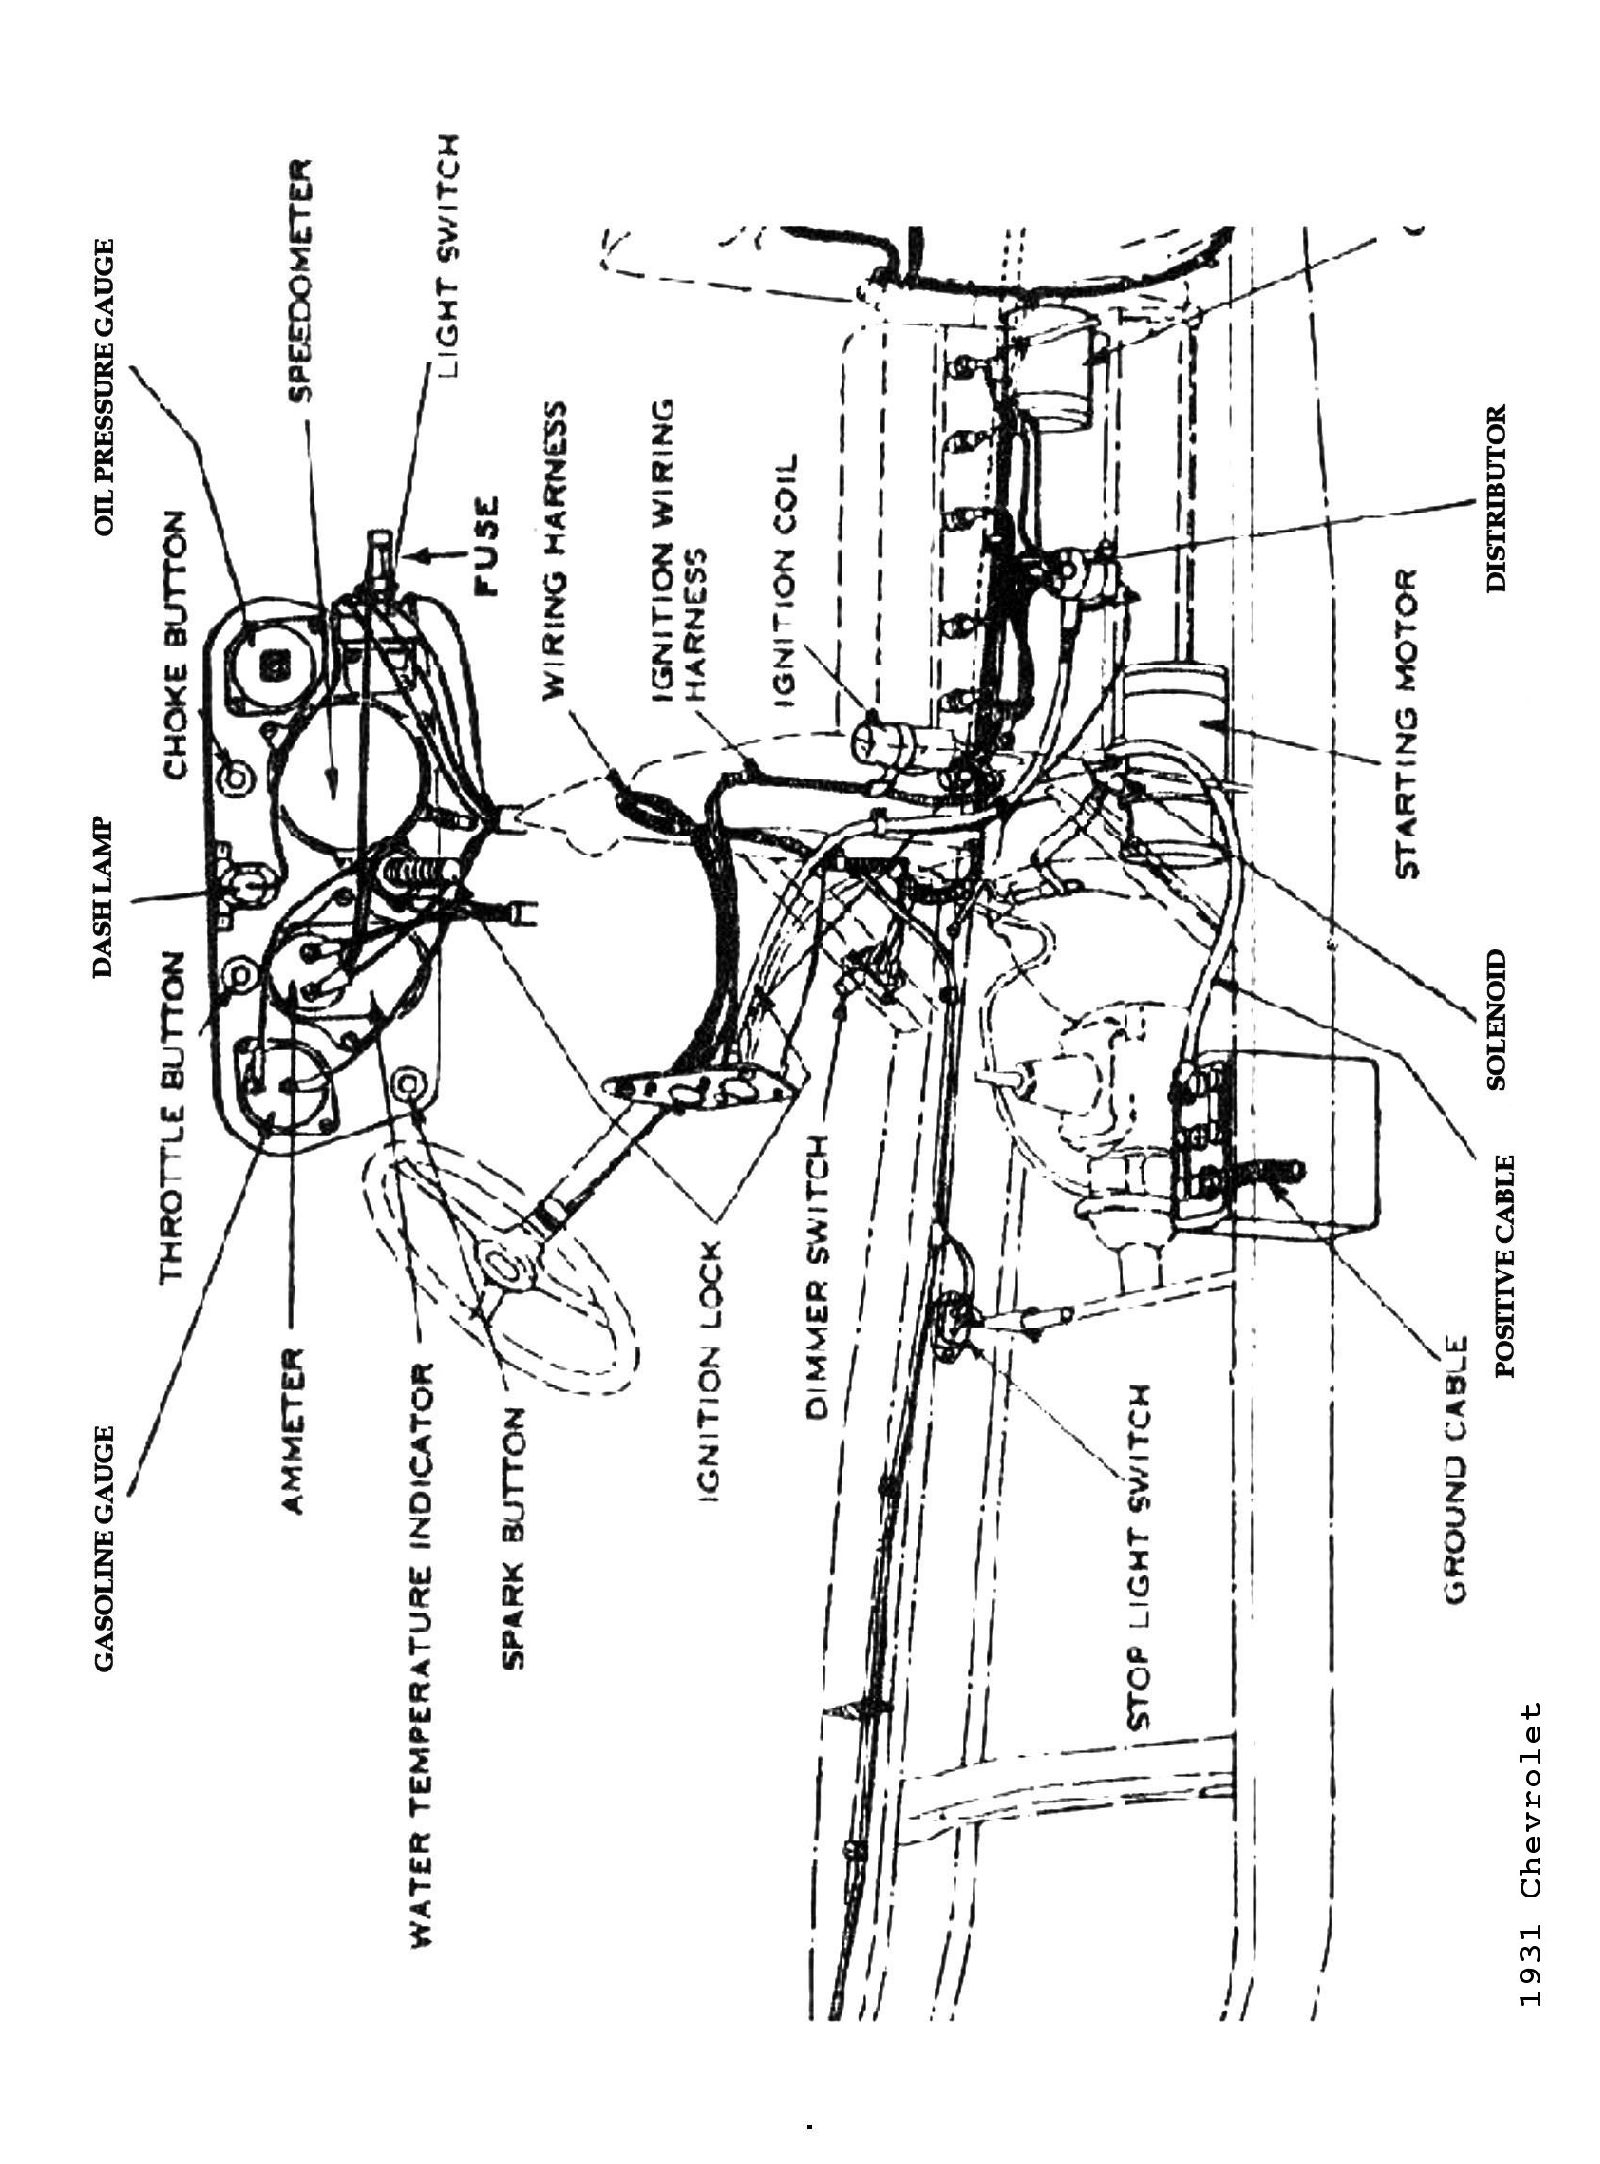 Model A Wiring Schematic